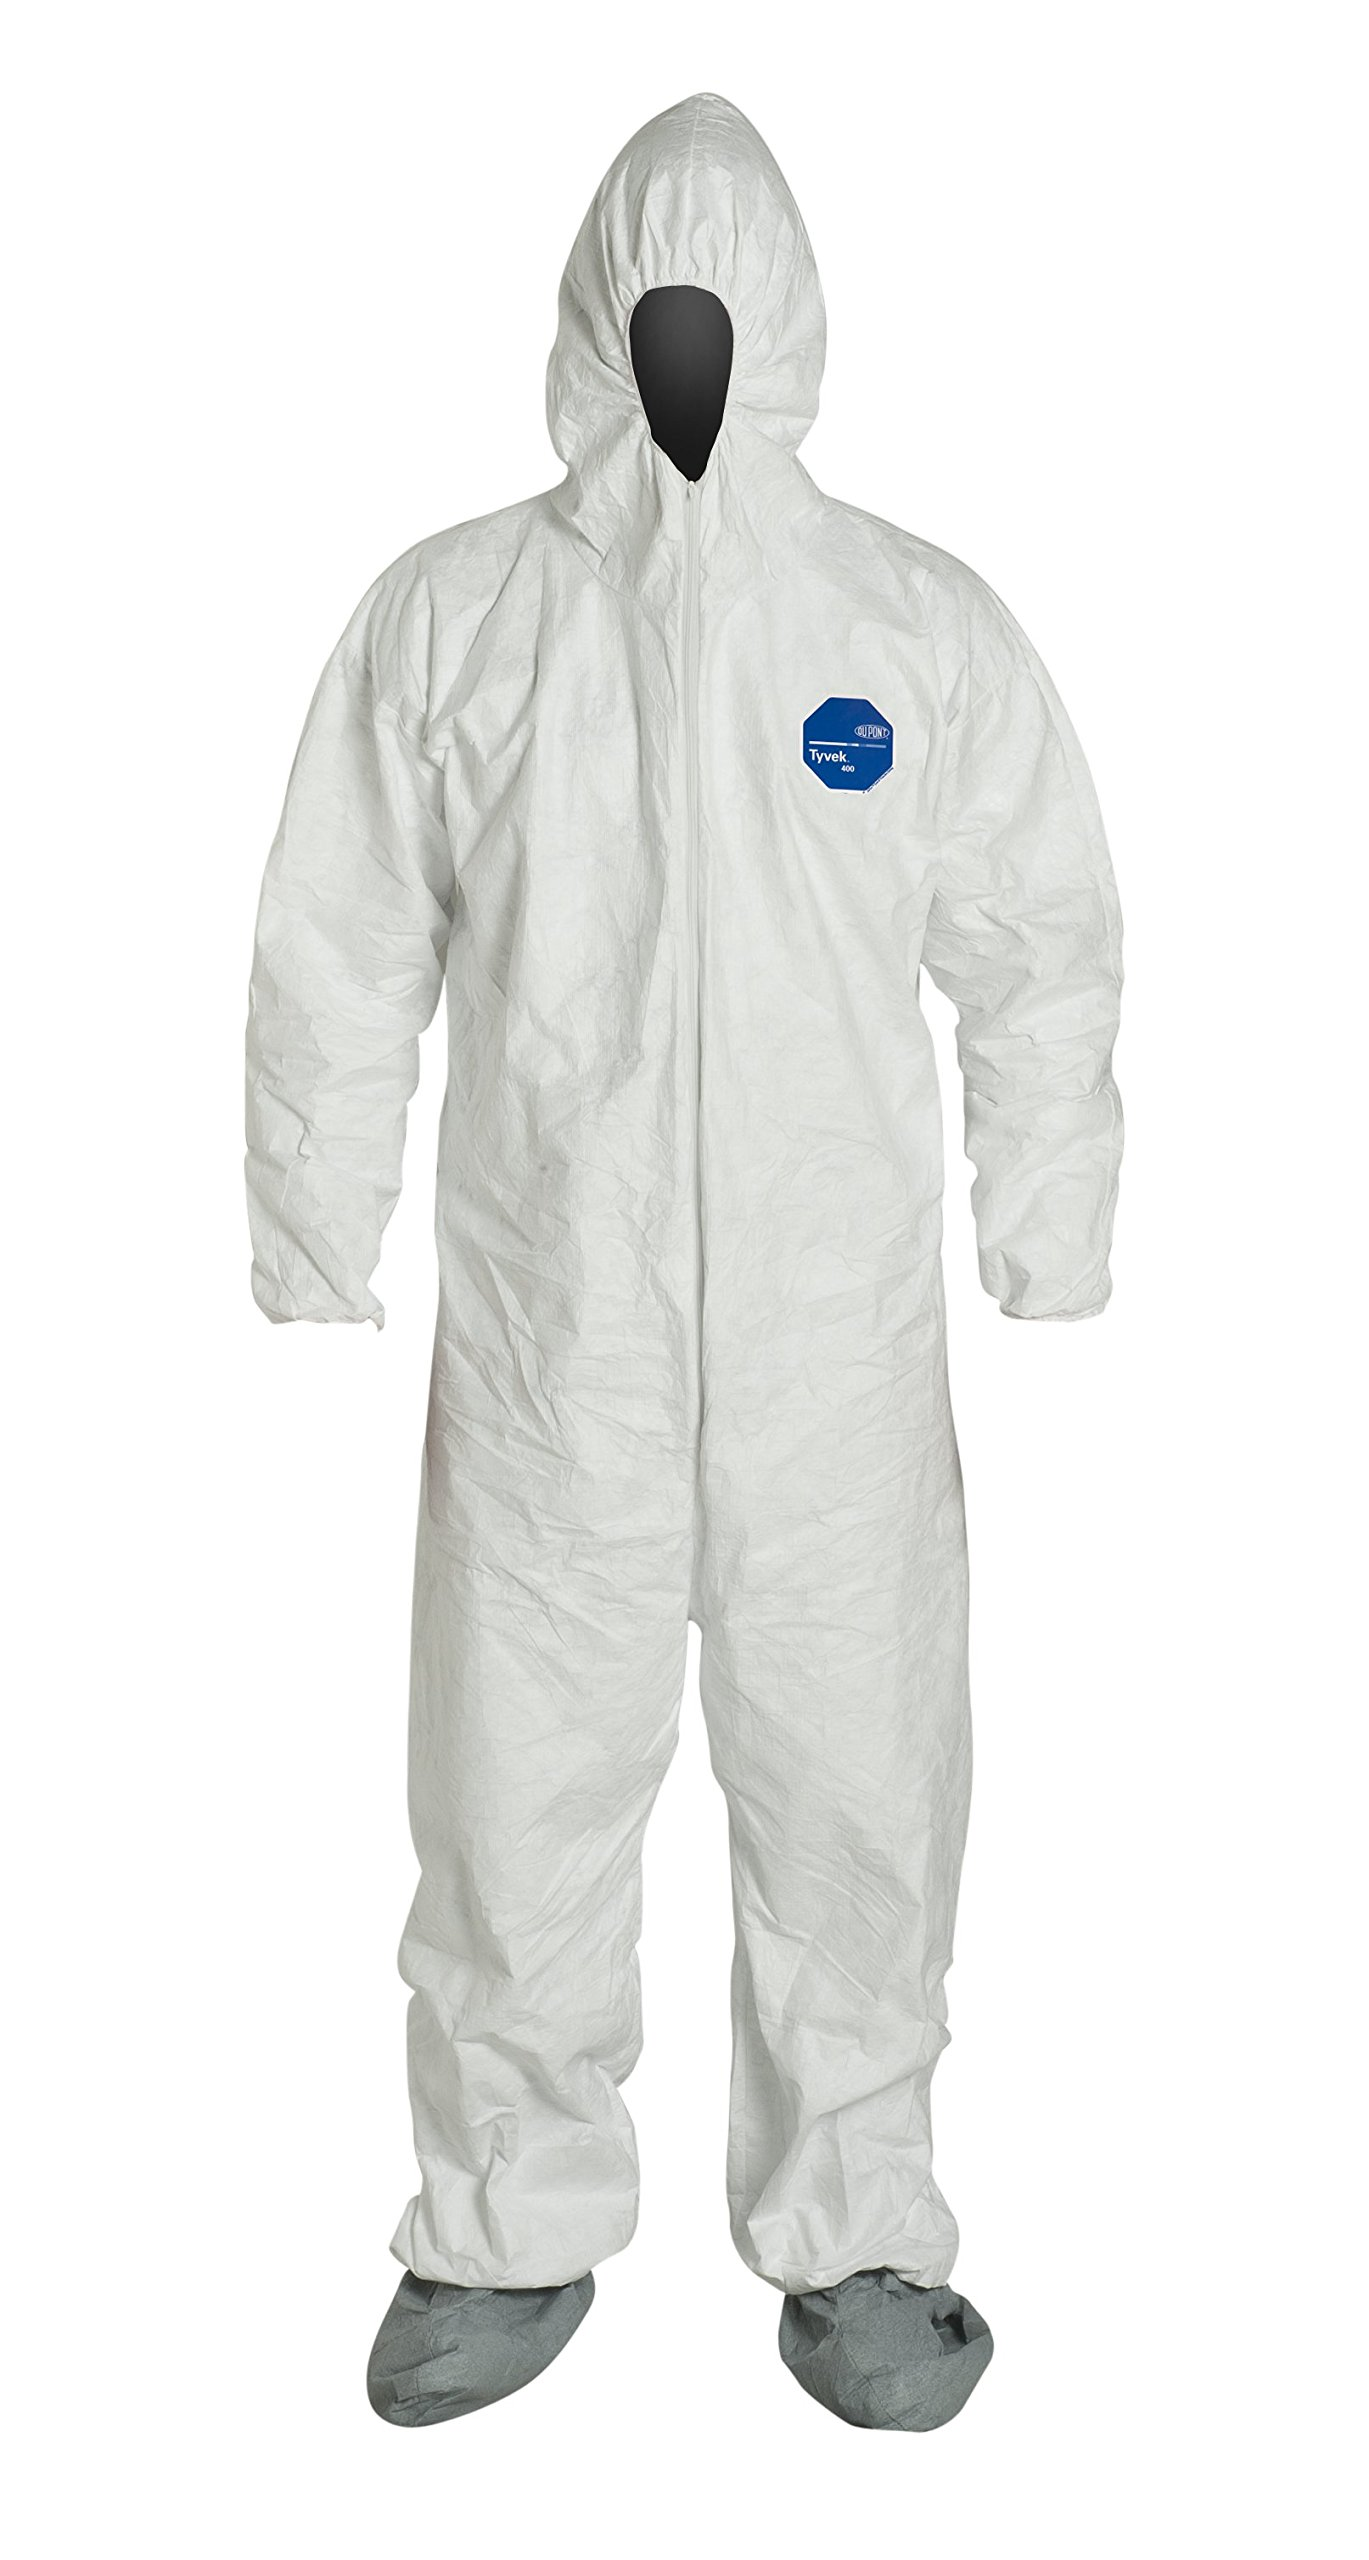 DuPont Tyvek 400 TY122S Disposable Protective Coverall with Elastic Cuffs, Attached Hood and Boots, White, X-Large (Pack of 6)